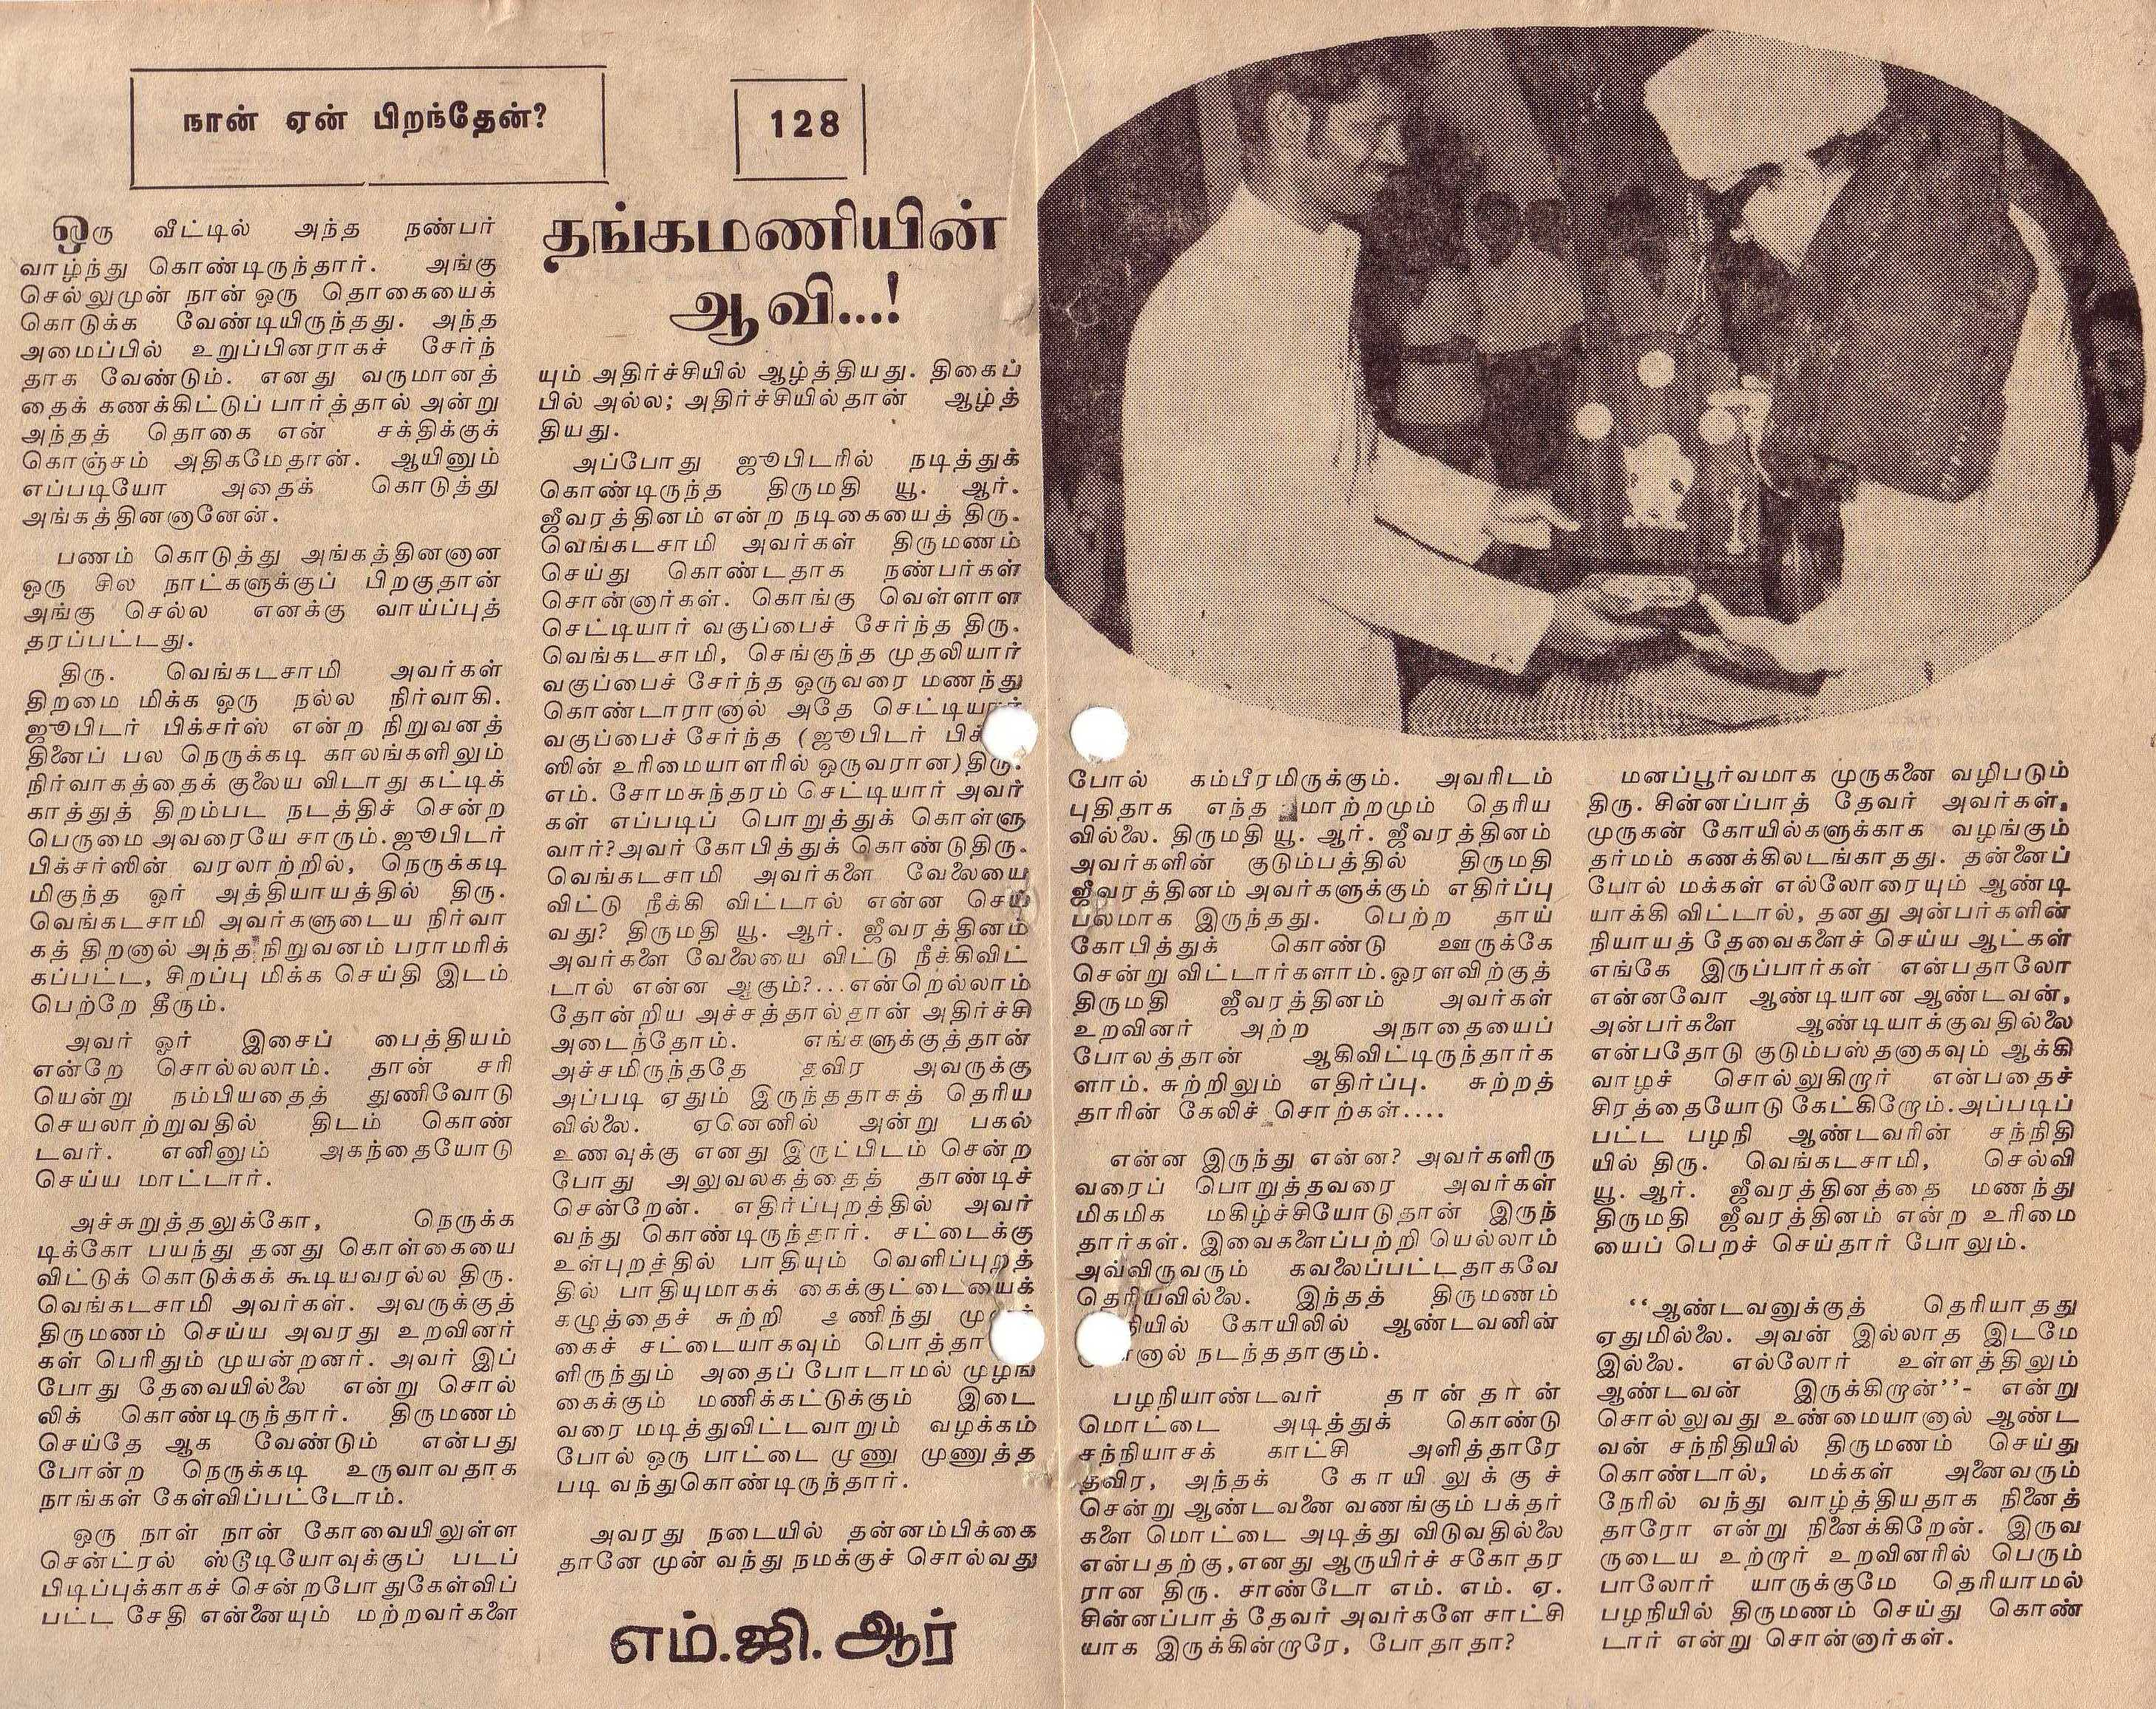 MGR autobiography chapter 128